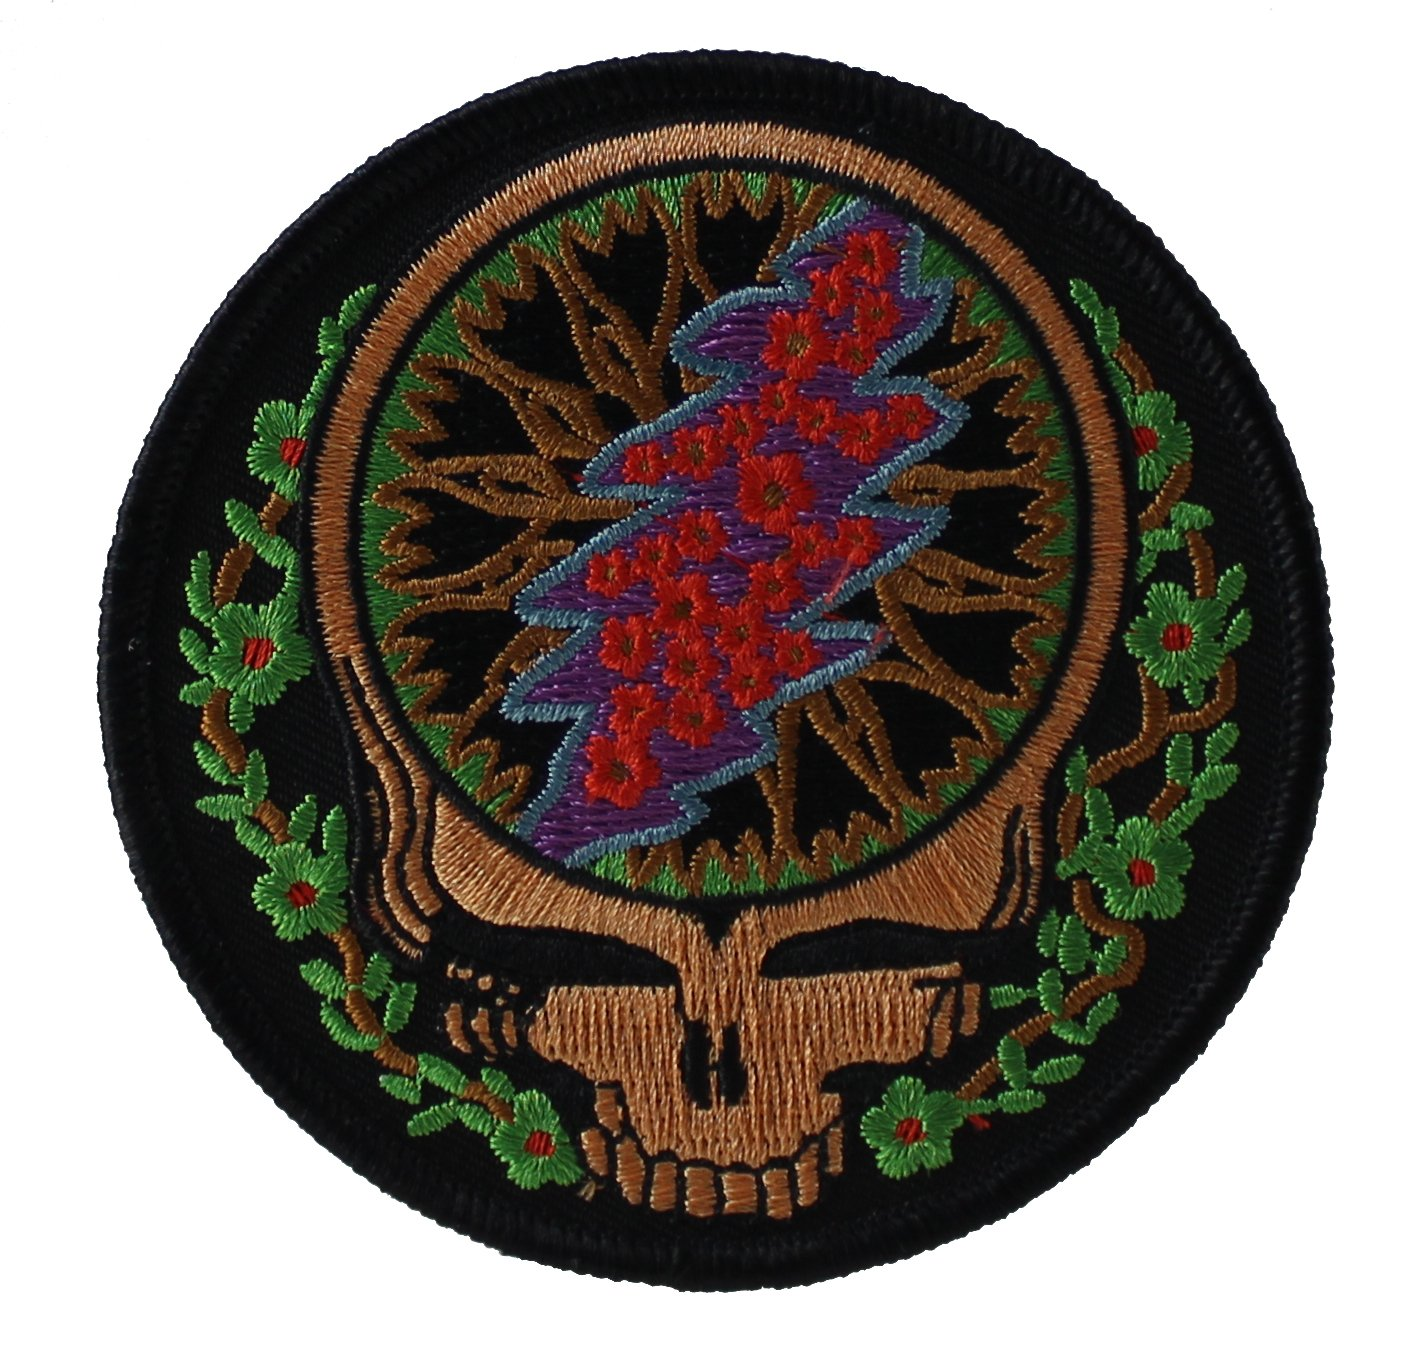 C&D Visionary P-3804 Grateful Dead SYF with Vines Patch C&D Visionary Inc.